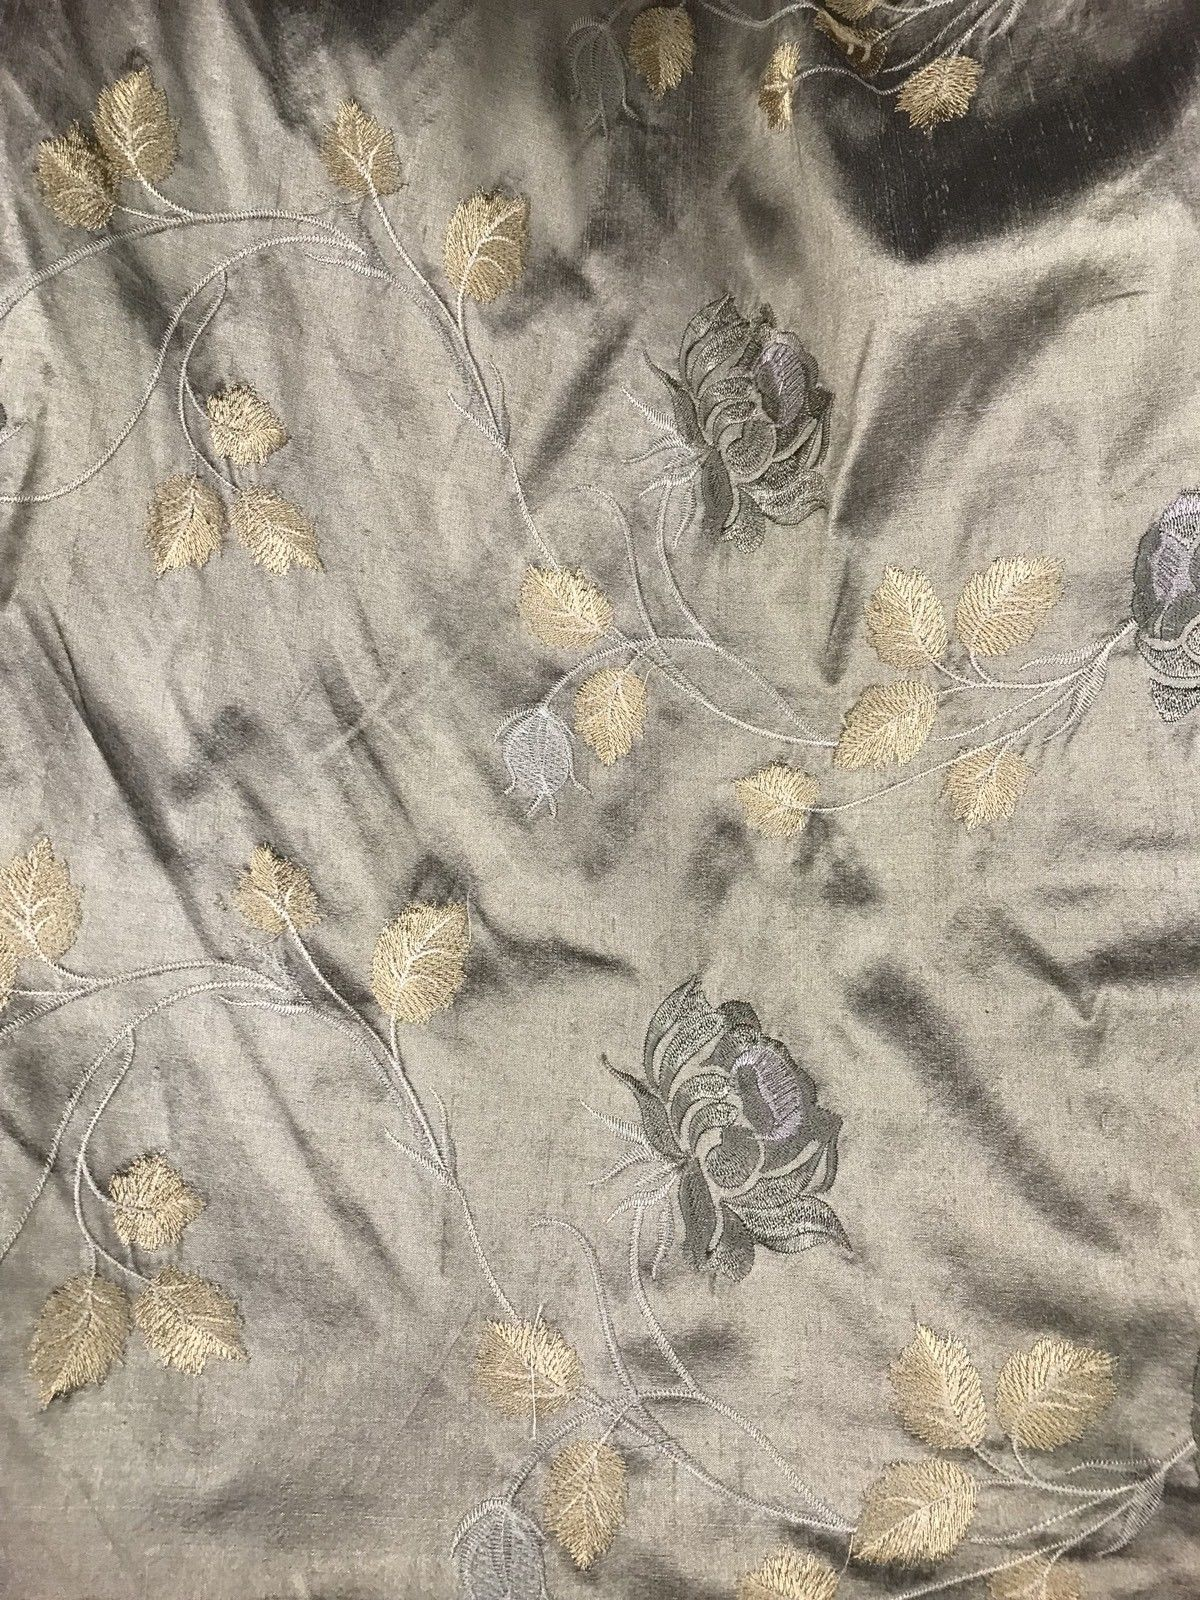 SALE! 100% Silk Taffeta Drapery Embroidery Fabric - Gray W/ Lilac & Gold Floral - Fancy Styles Fabric Boutique